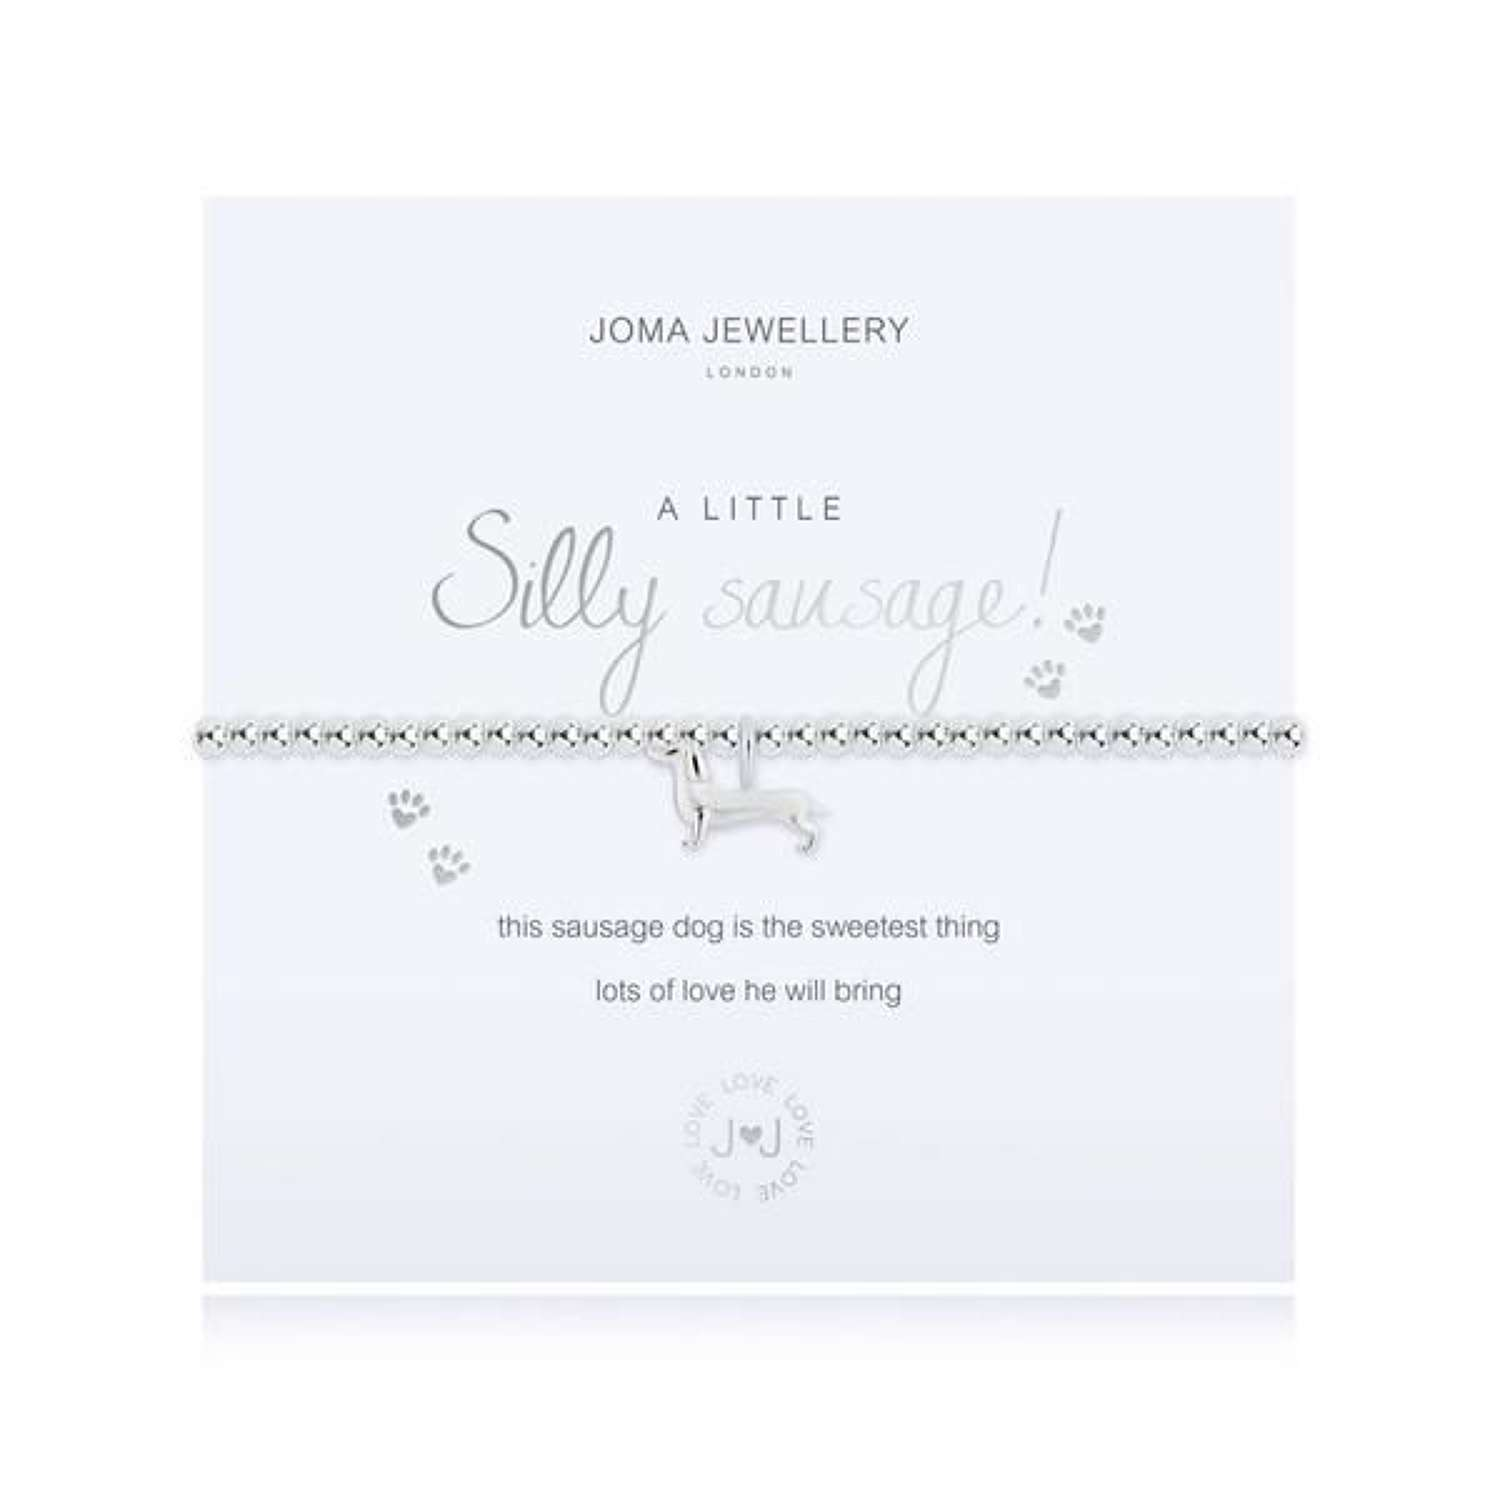 Joma Jewellery-A Little-Silly sausage-features a sausage dog charm